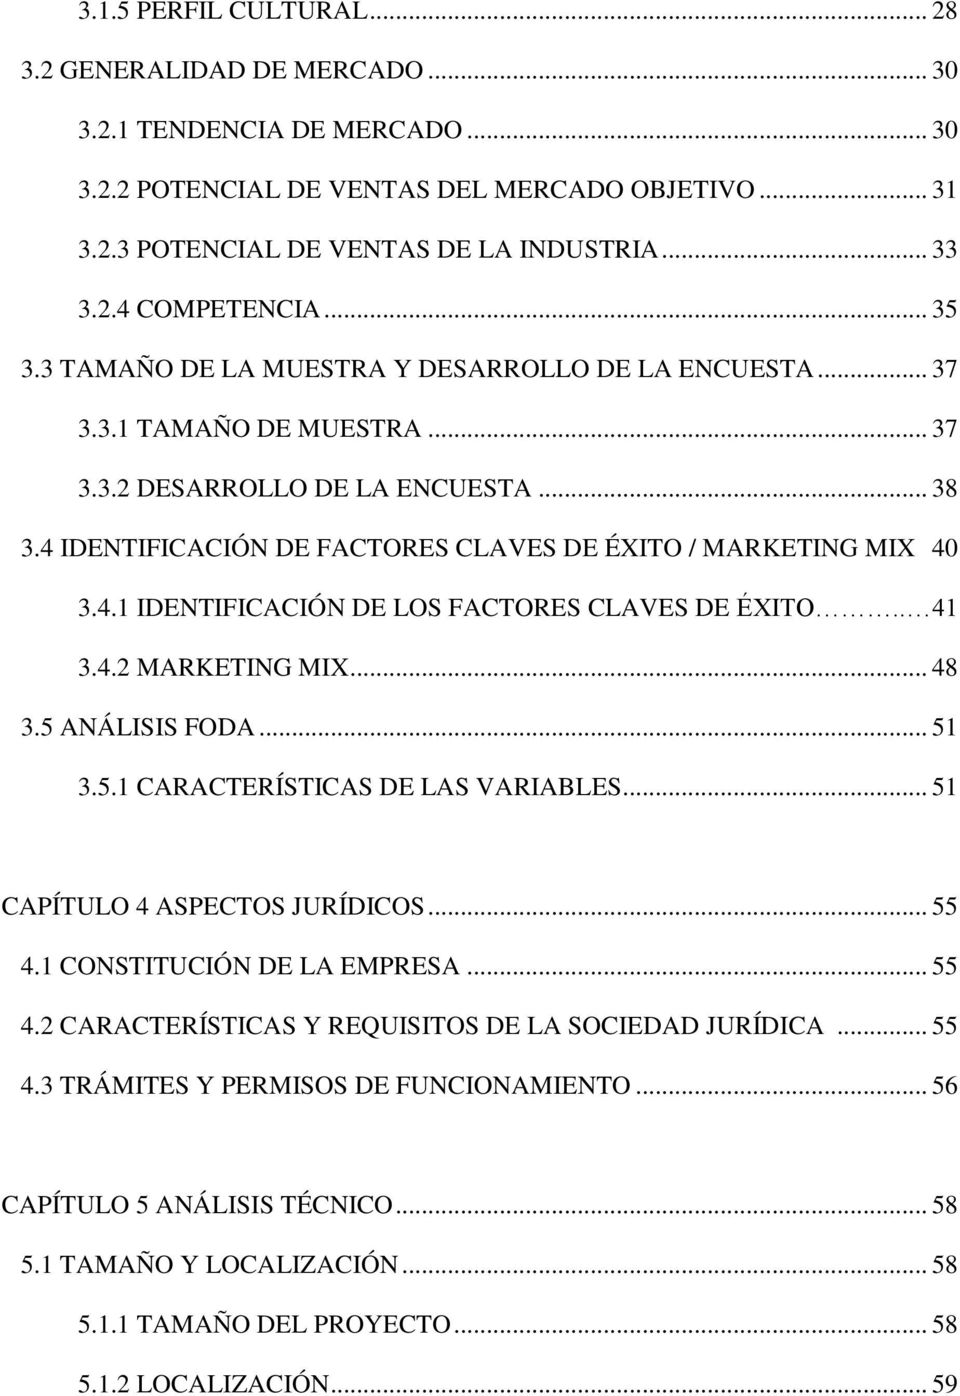 4 IDENTIFICACIÓN DE FACTORES CLAVES DE ÉXITO / MARKETING MIX 40 3.4.1 IDENTIFICACIÓN DE LOS FACTORES CLAVES DE ÉXITO.. 41 3.4.2 MARKETING MIX... 48 3.5 ANÁLISIS FODA... 51 3.5.1 CARACTERÍSTICAS DE LAS VARIABLES.